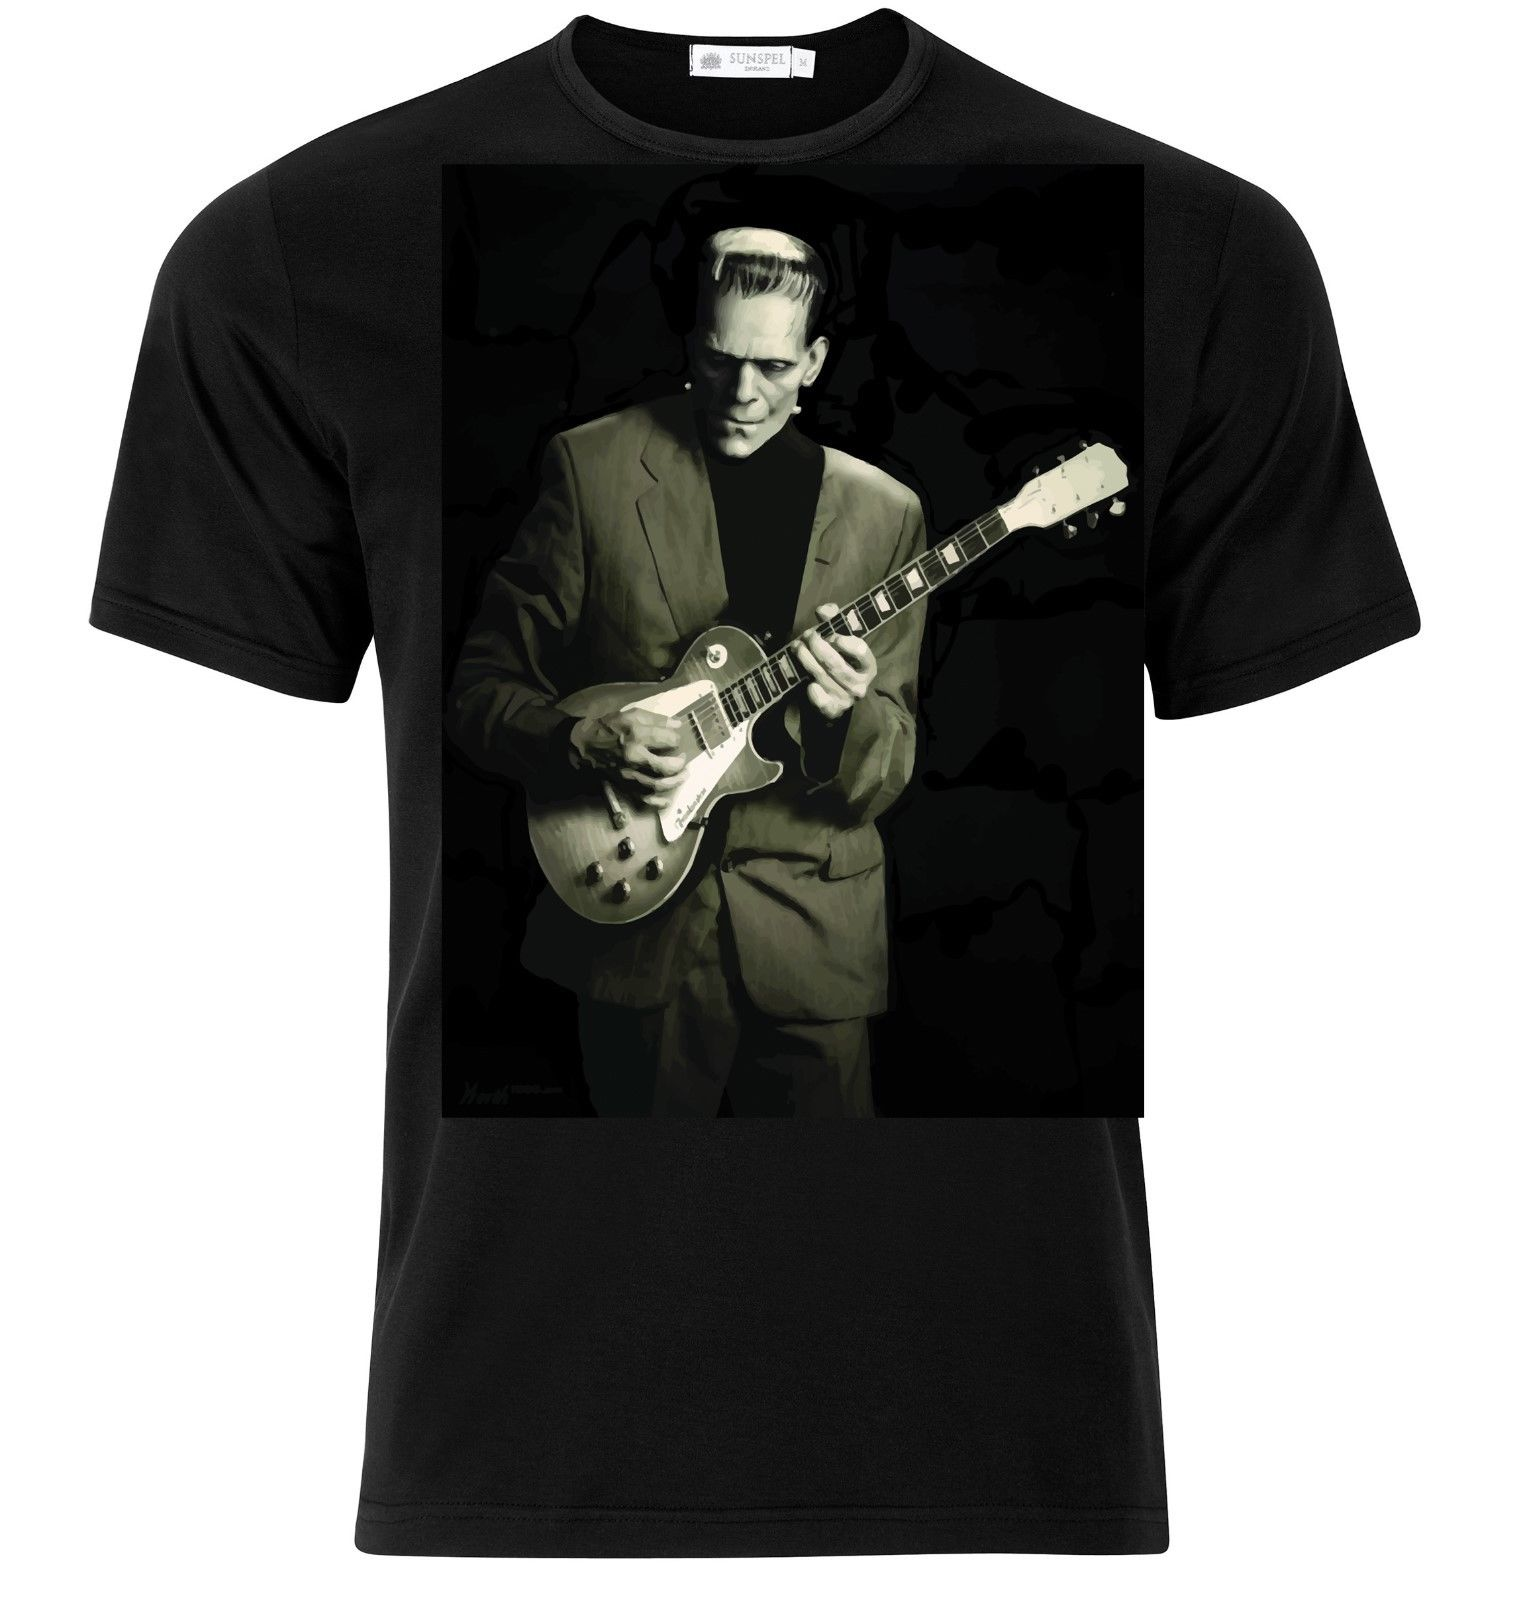 Herman Munster Frankenstein Guitarist Guitar Rock Blues Music Funny T.Shirt image